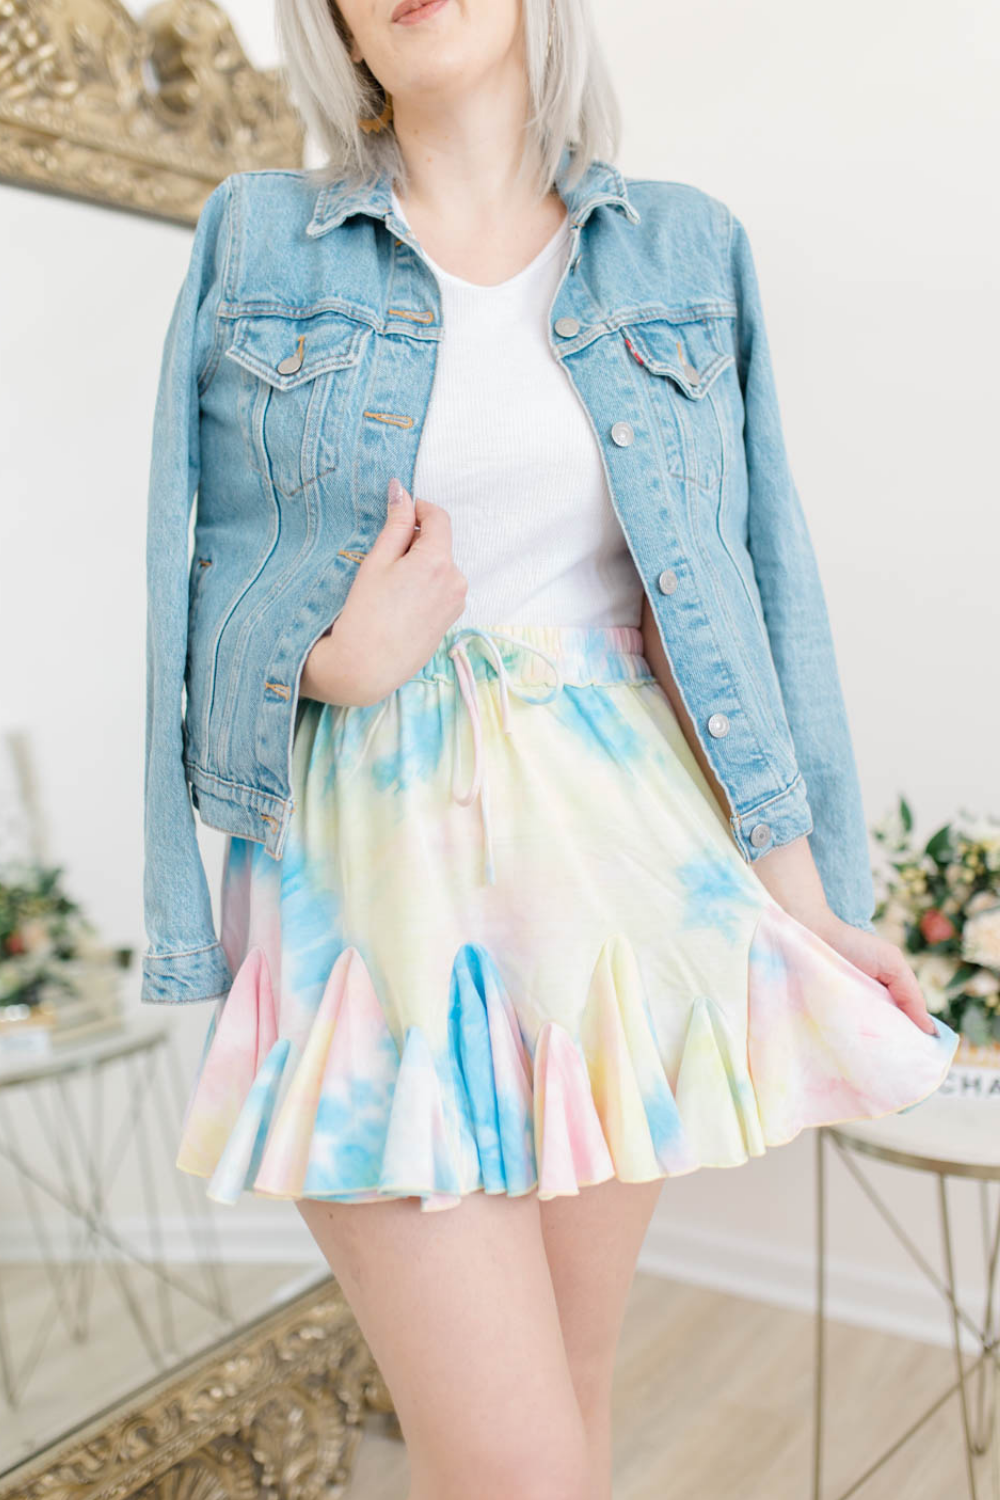 BOUNCE BACK TIE DYE SKIRT